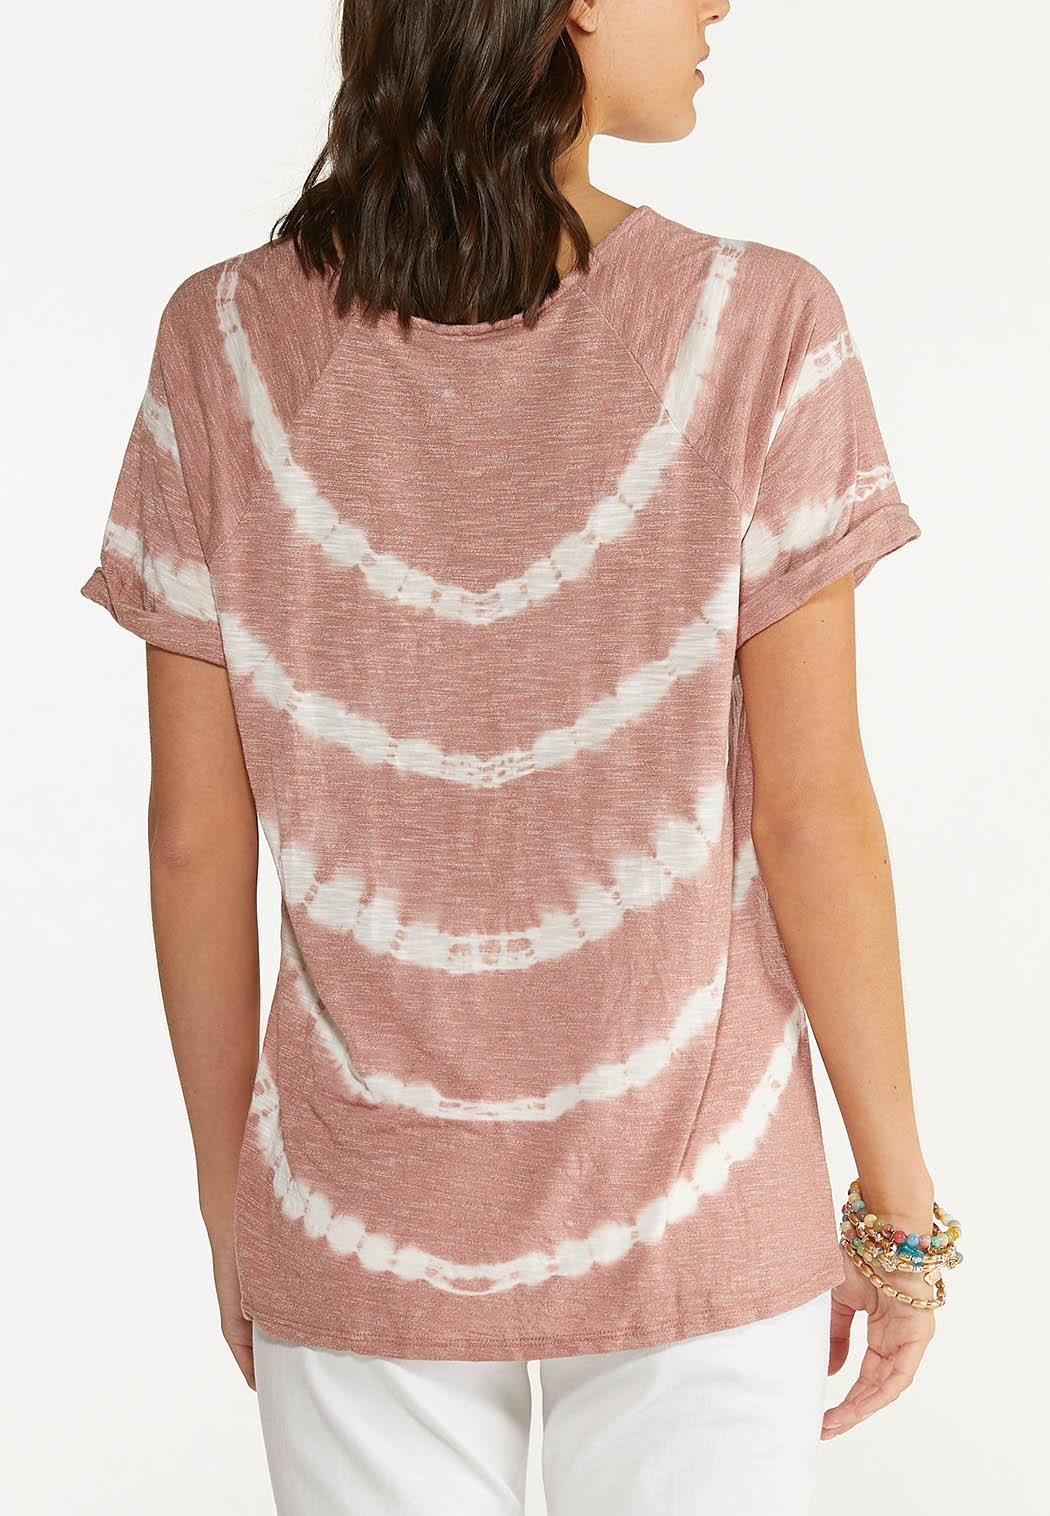 Plus Size Knotted Tie Dye Lounge Top (Item #44613144)